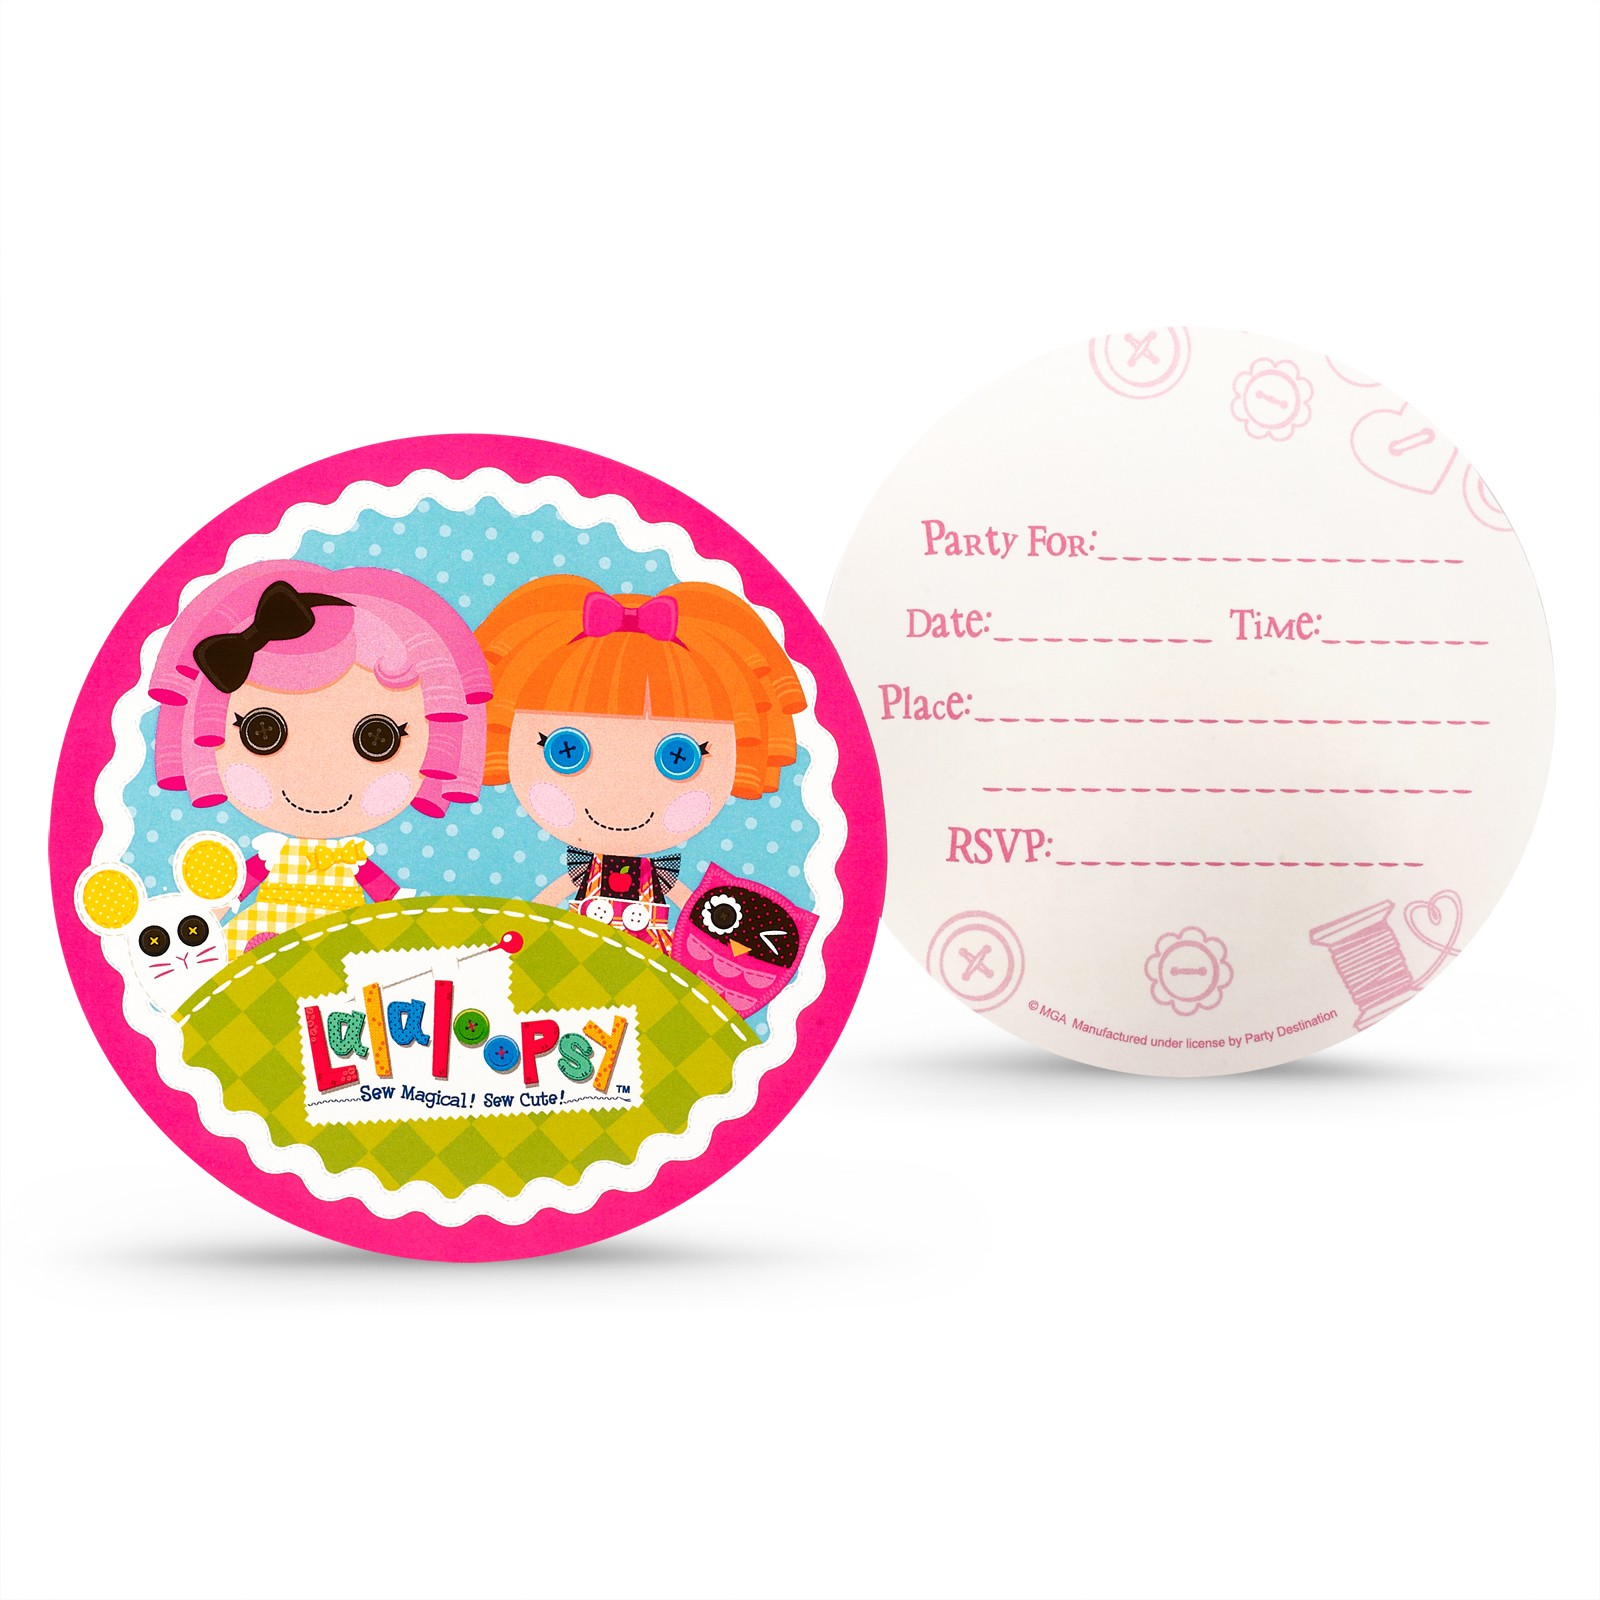 Bubble Birthday Invitations is adorable invitation design